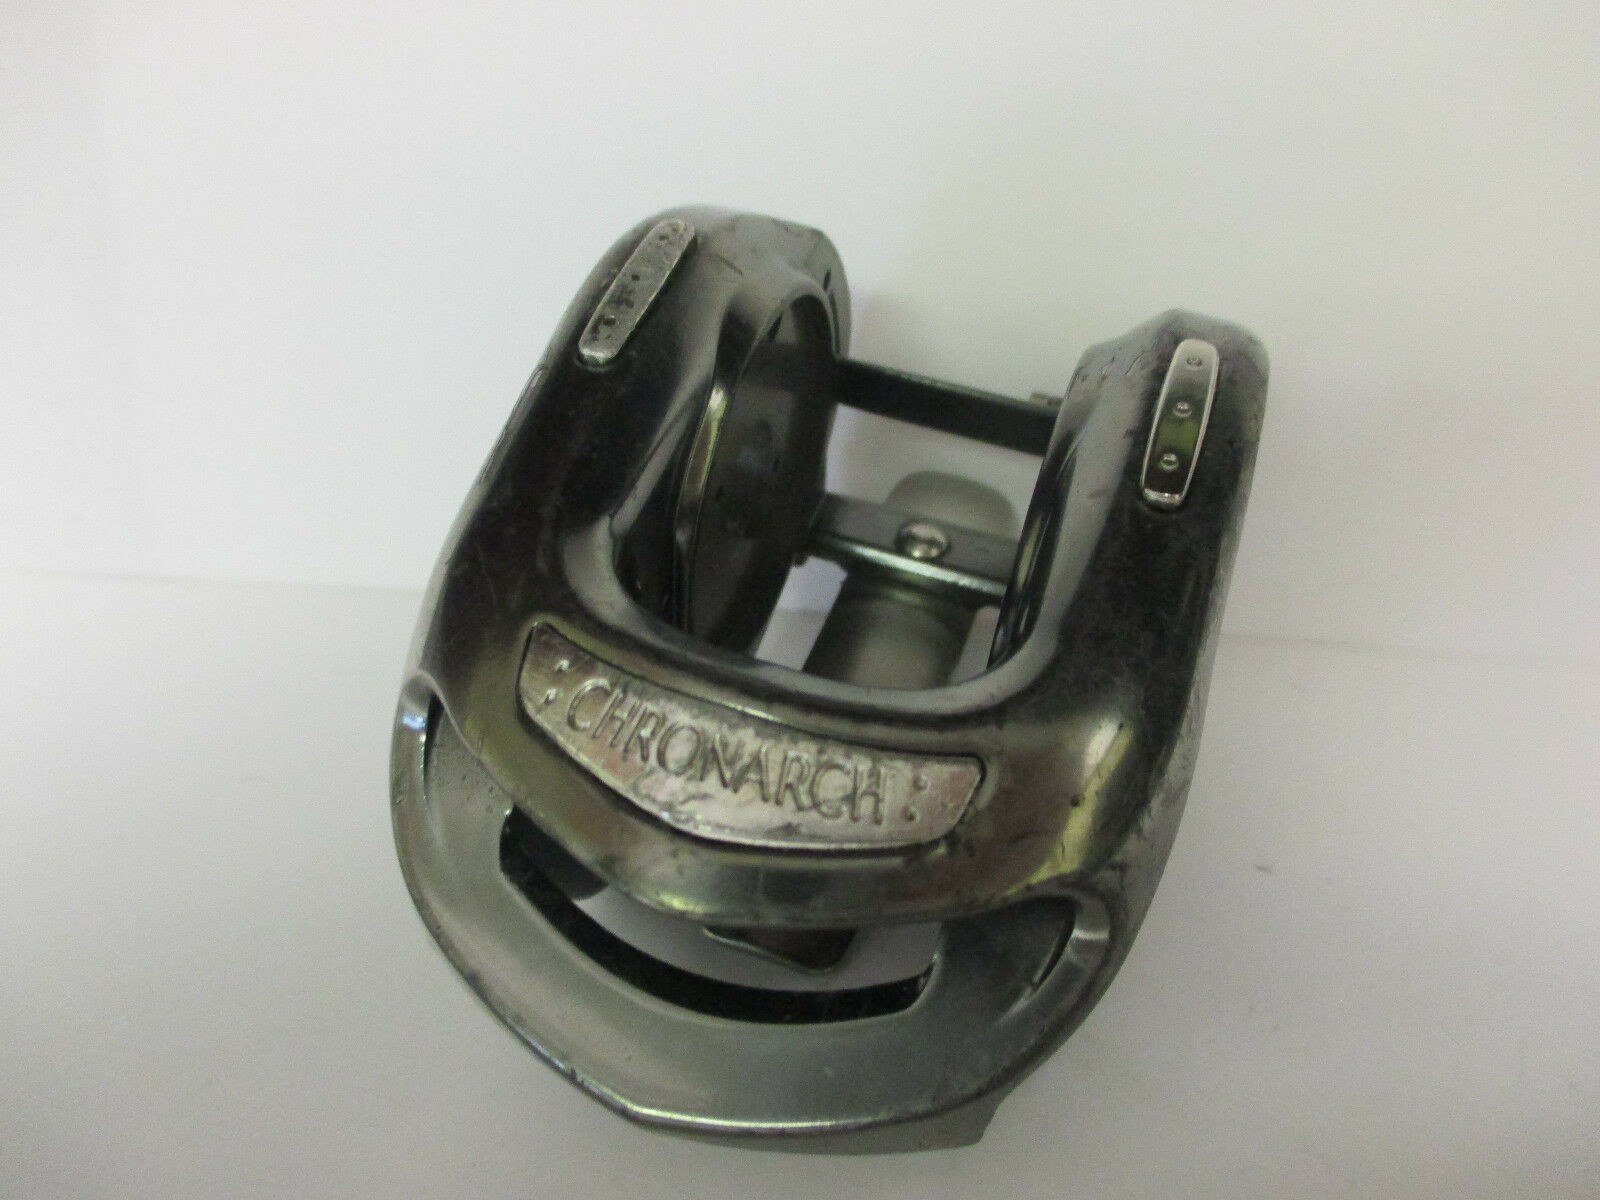 USED SHIMANO BAITCASTING REEL 100B PART - Chronarch CH 100B REEL - Frame  J d28dfc